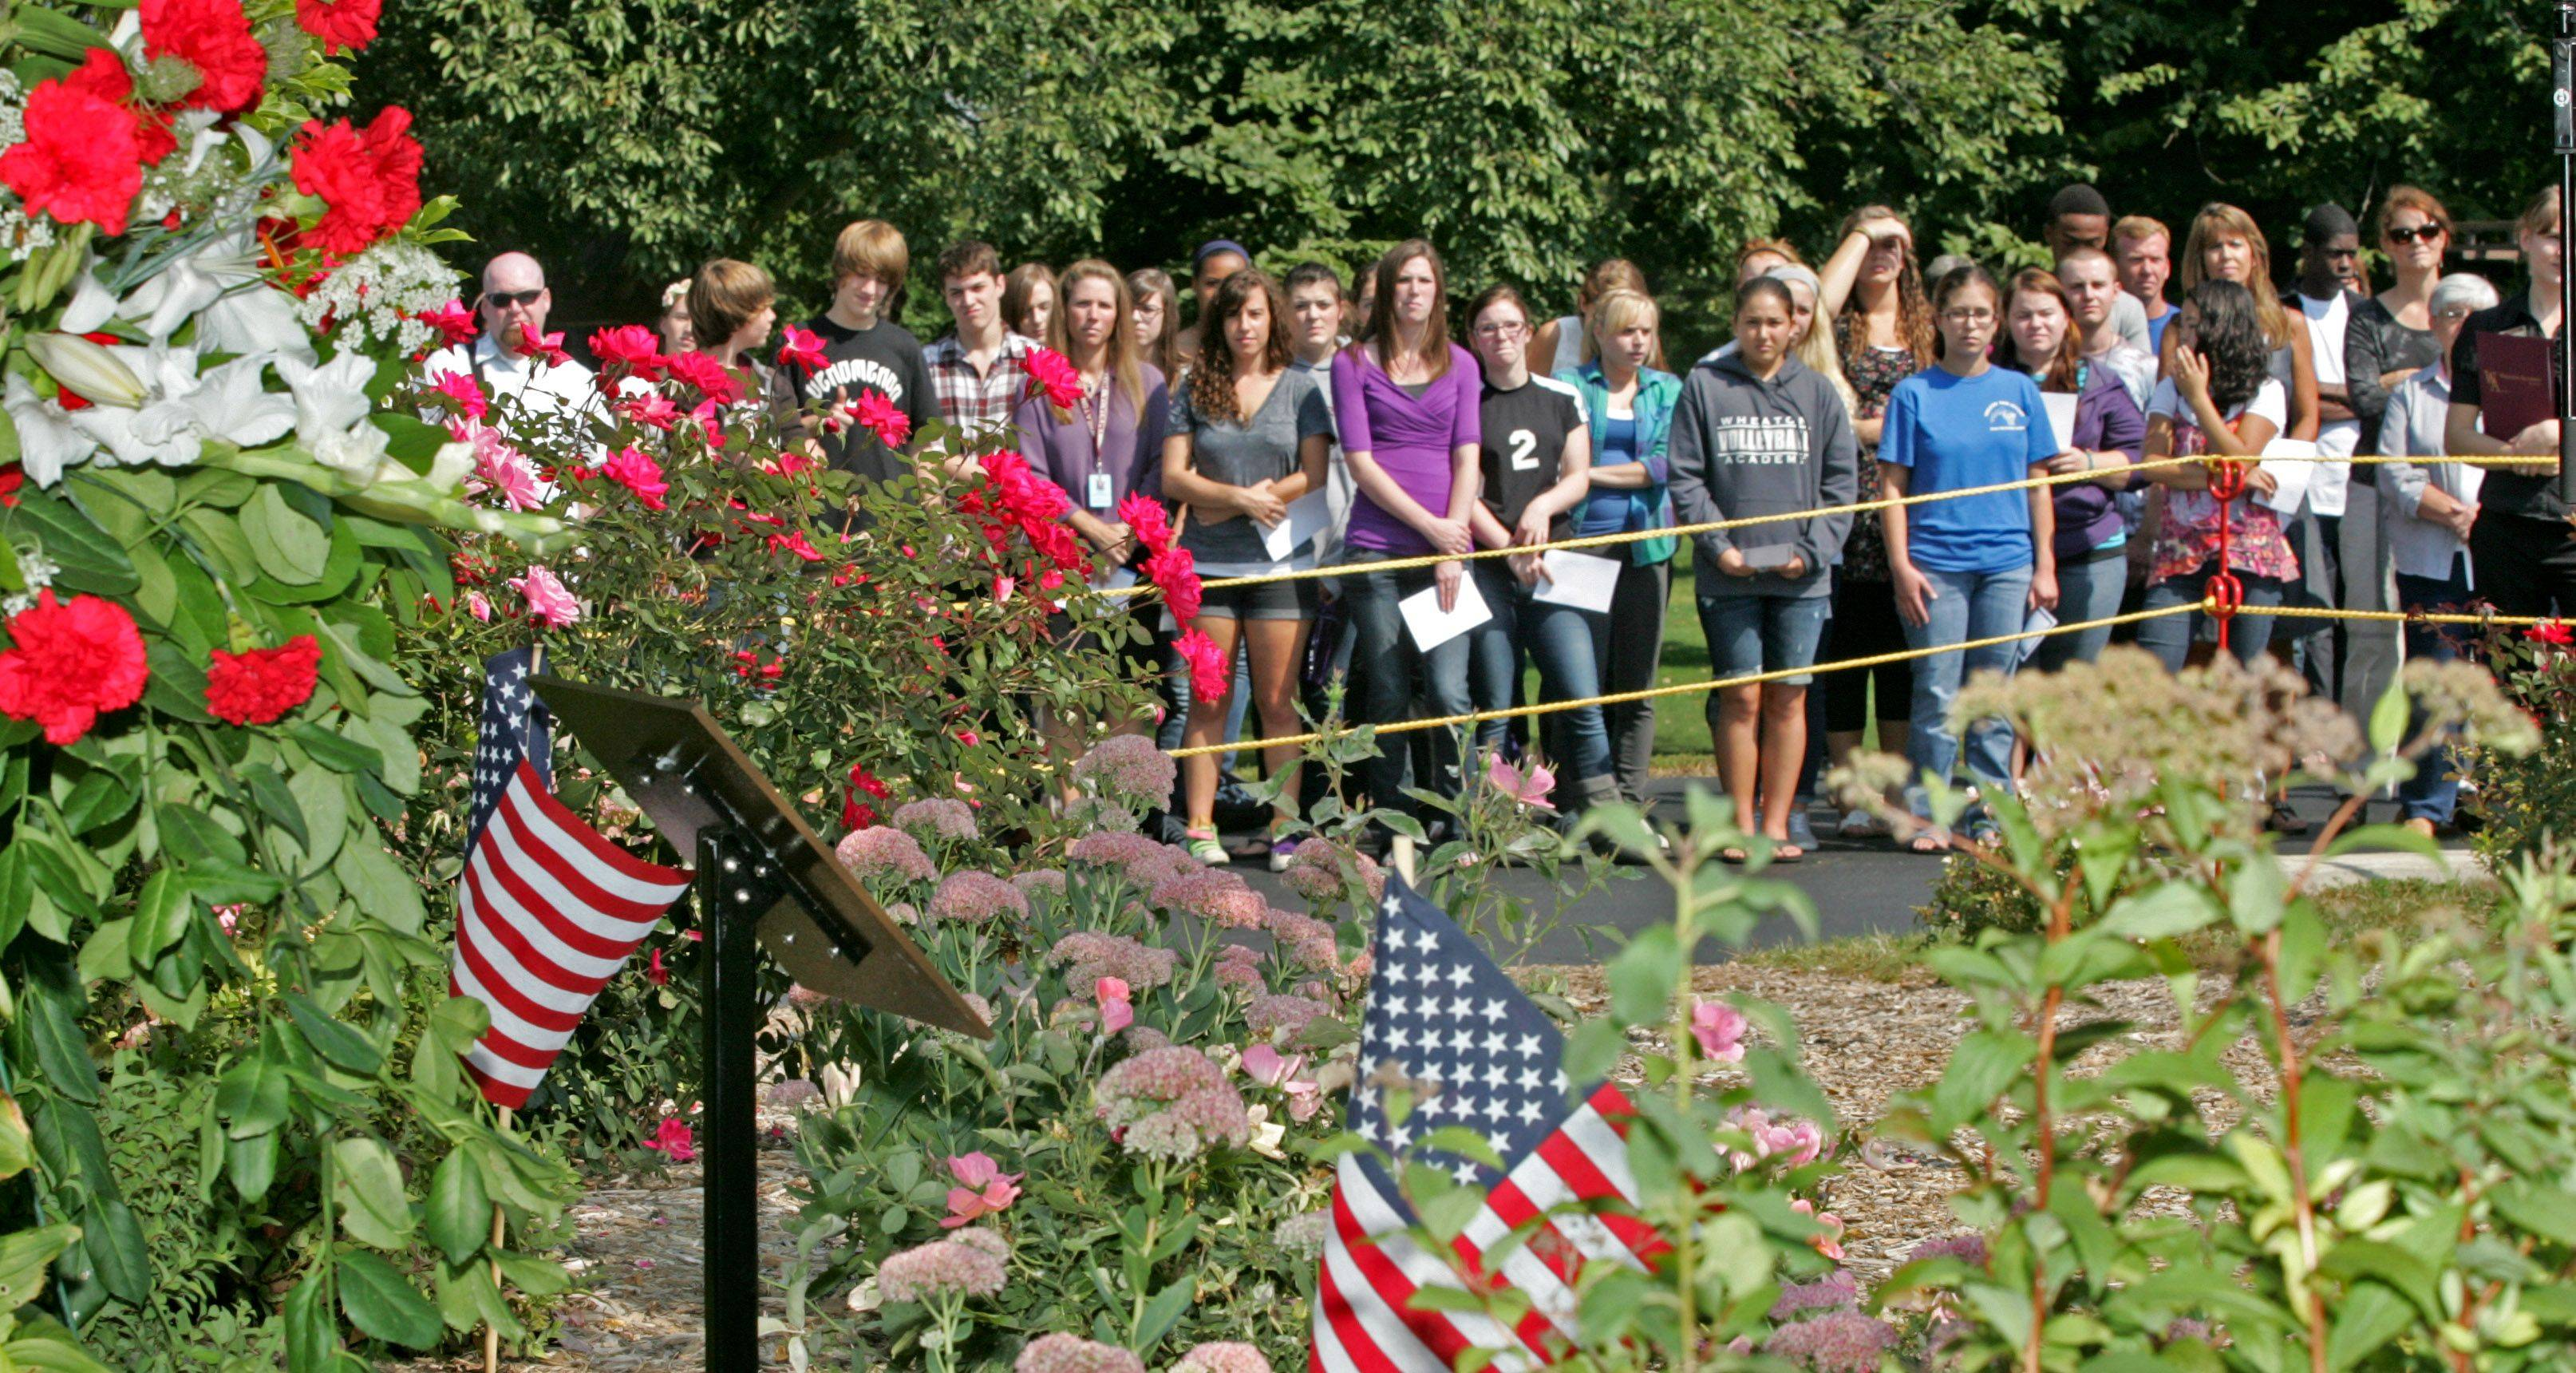 About 400 Wheaton Academy students took time out of the day to attend a ceremony unveiling the Todd Beamer Memorial Plaque.